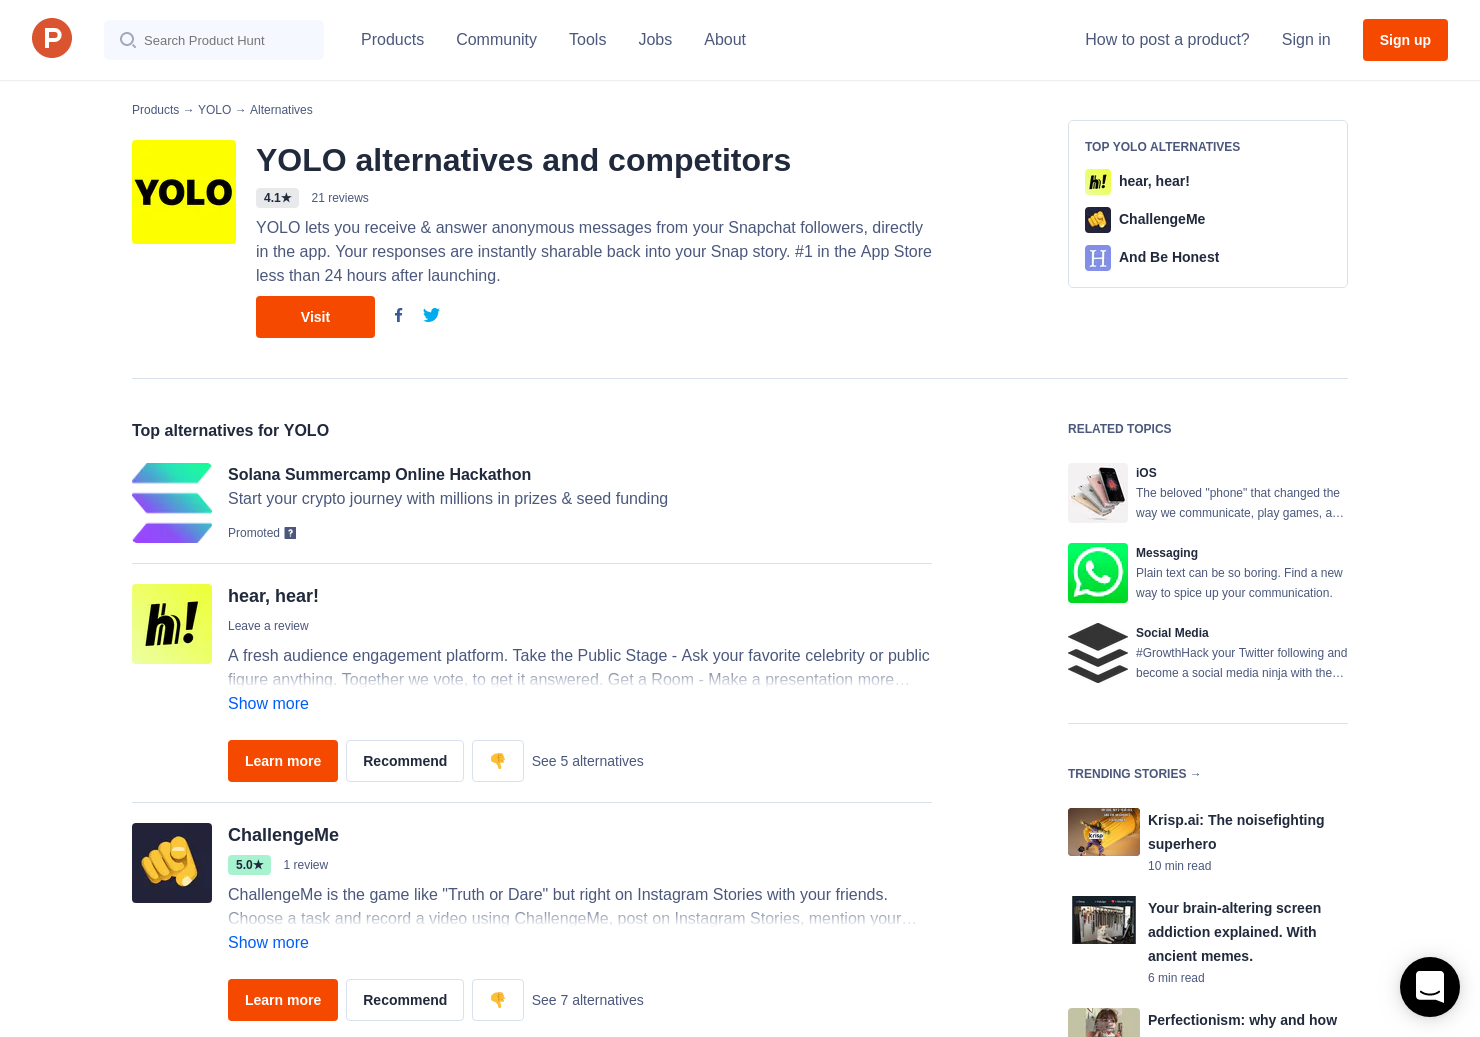 6 Alternatives to YOLO for iPhone | Product Hunt